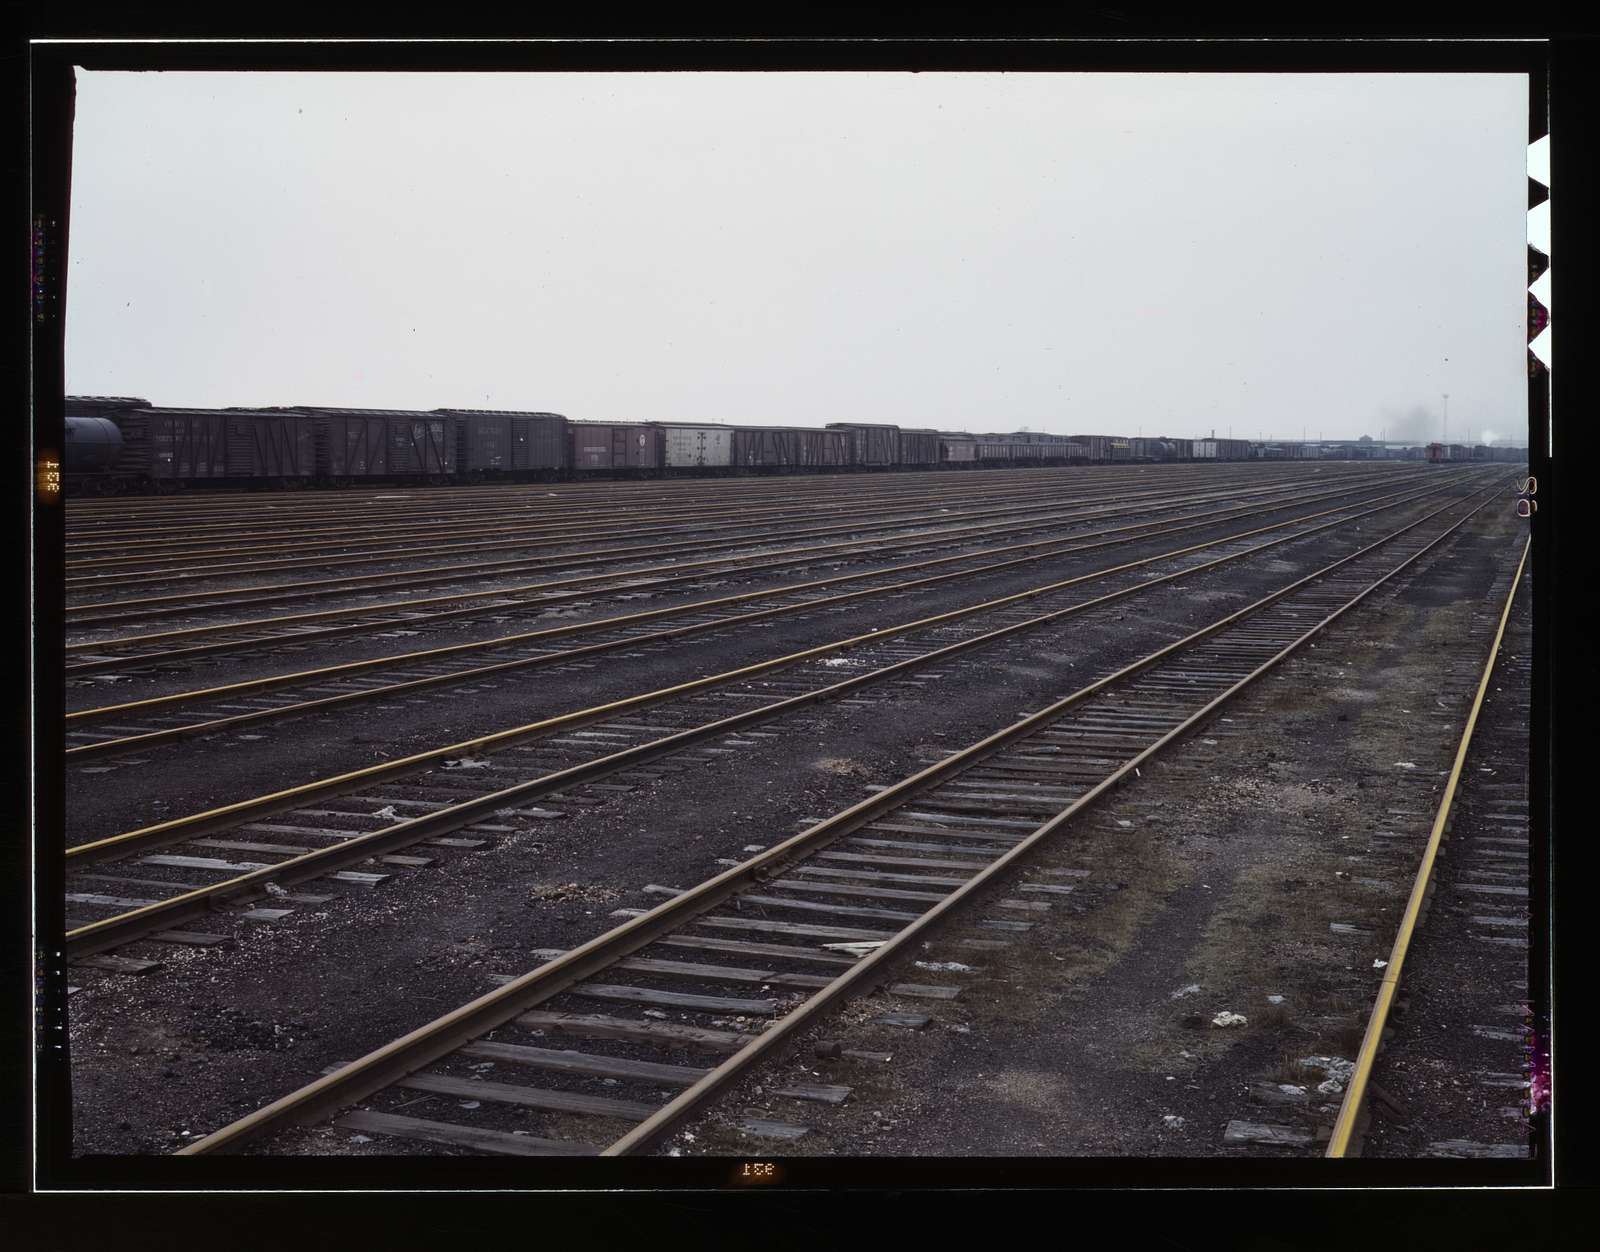 Tracks at Proviso yard of C & NW RR i.e. Chicago and North Western railroad, Chicago, Ill